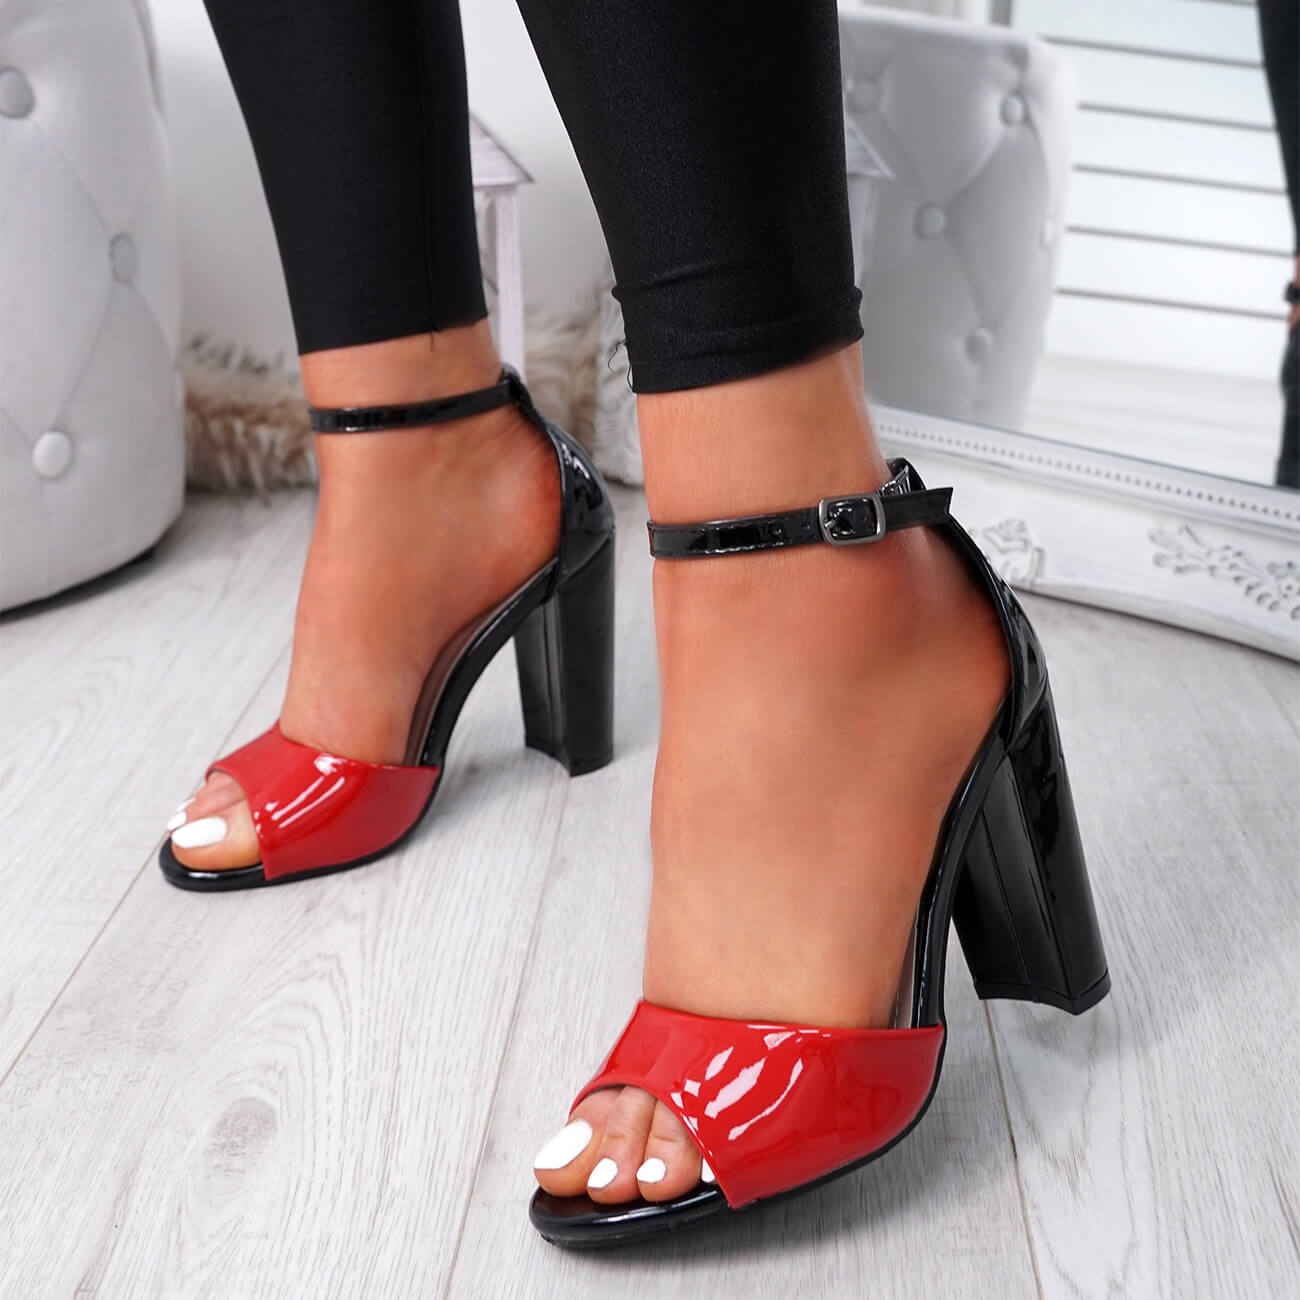 WOMENS-LADIES-ANKLE-STRAP-HIGH-BLOCK-HEEL-SANDALS-PEEP-TOE-OFFICE-CASUAL-SHOES thumbnail 25